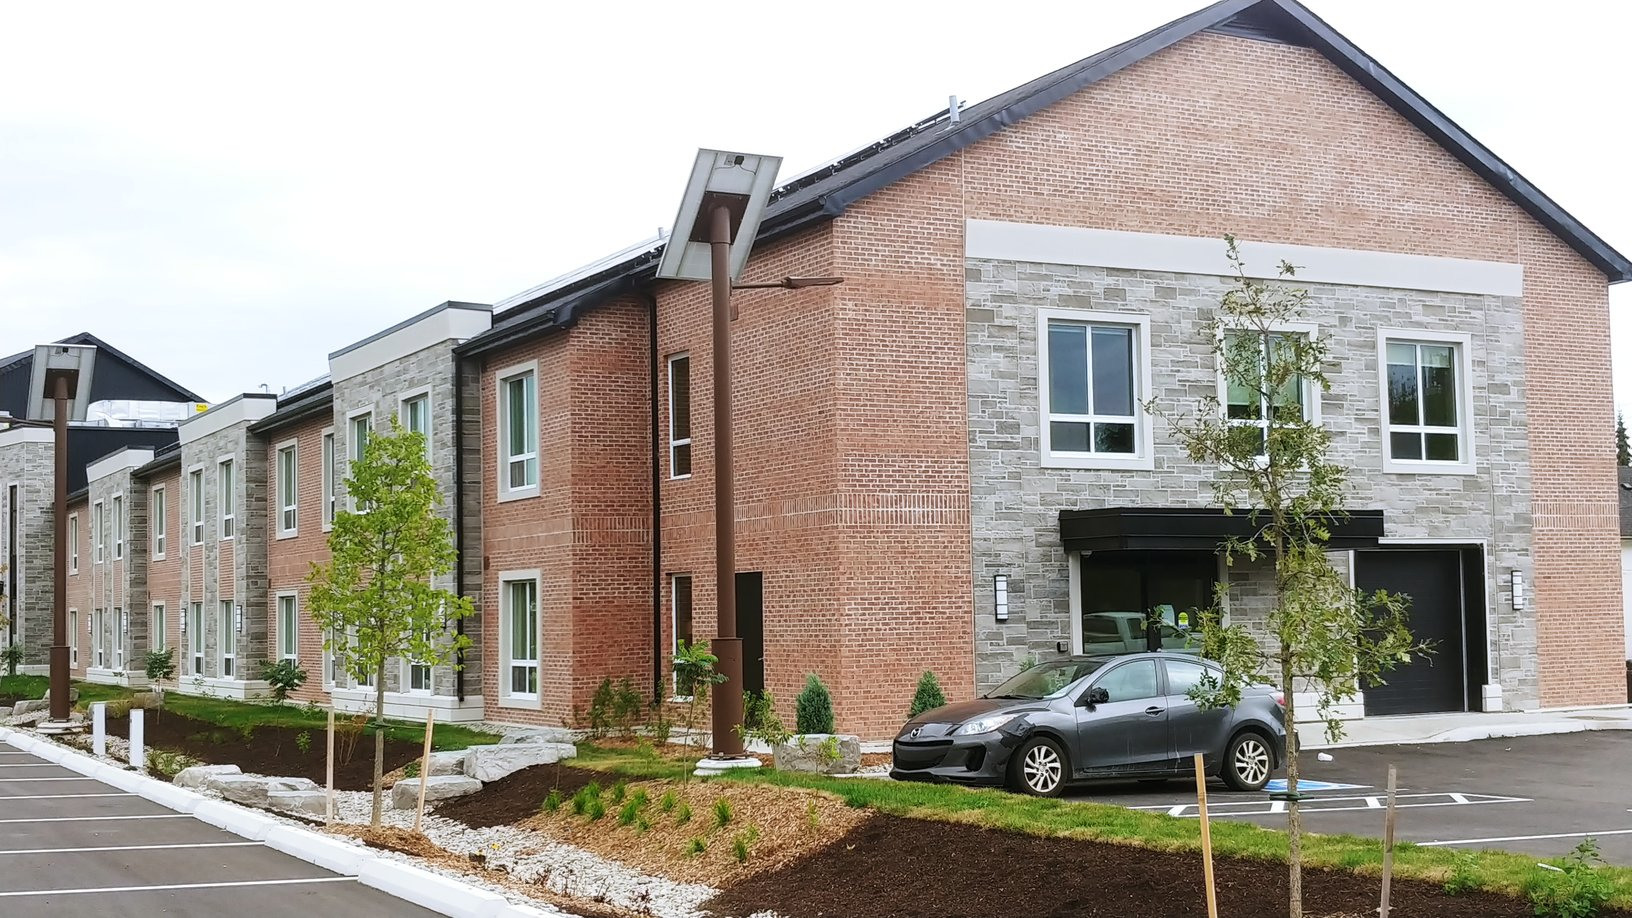 New housing complex should be for rehab, not 'condoning drugs': Woman's petition